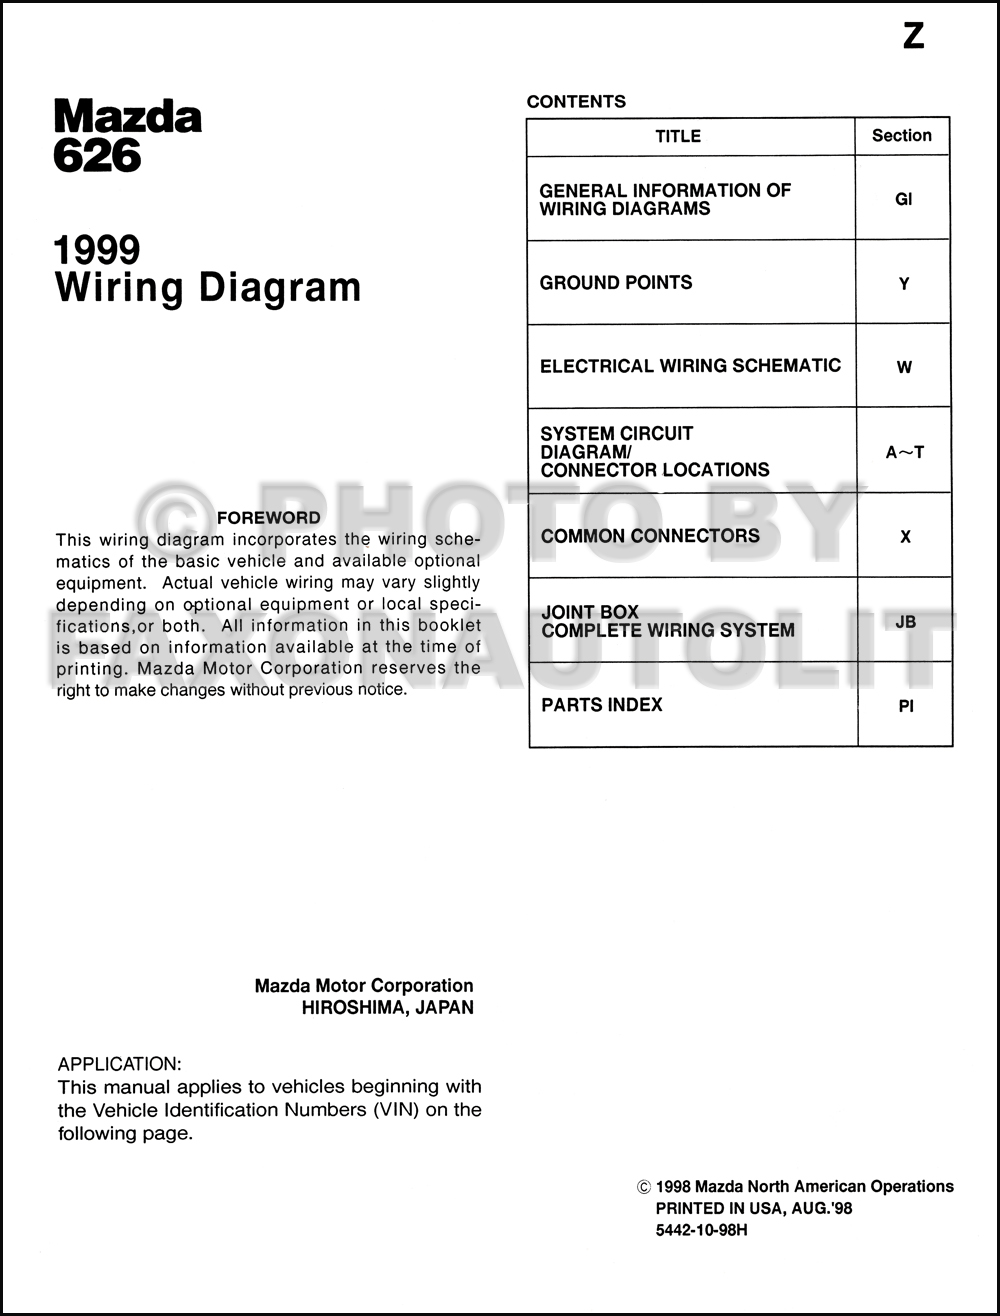 2001 mazda 626 wiring diagram 87 mazda 626 engine